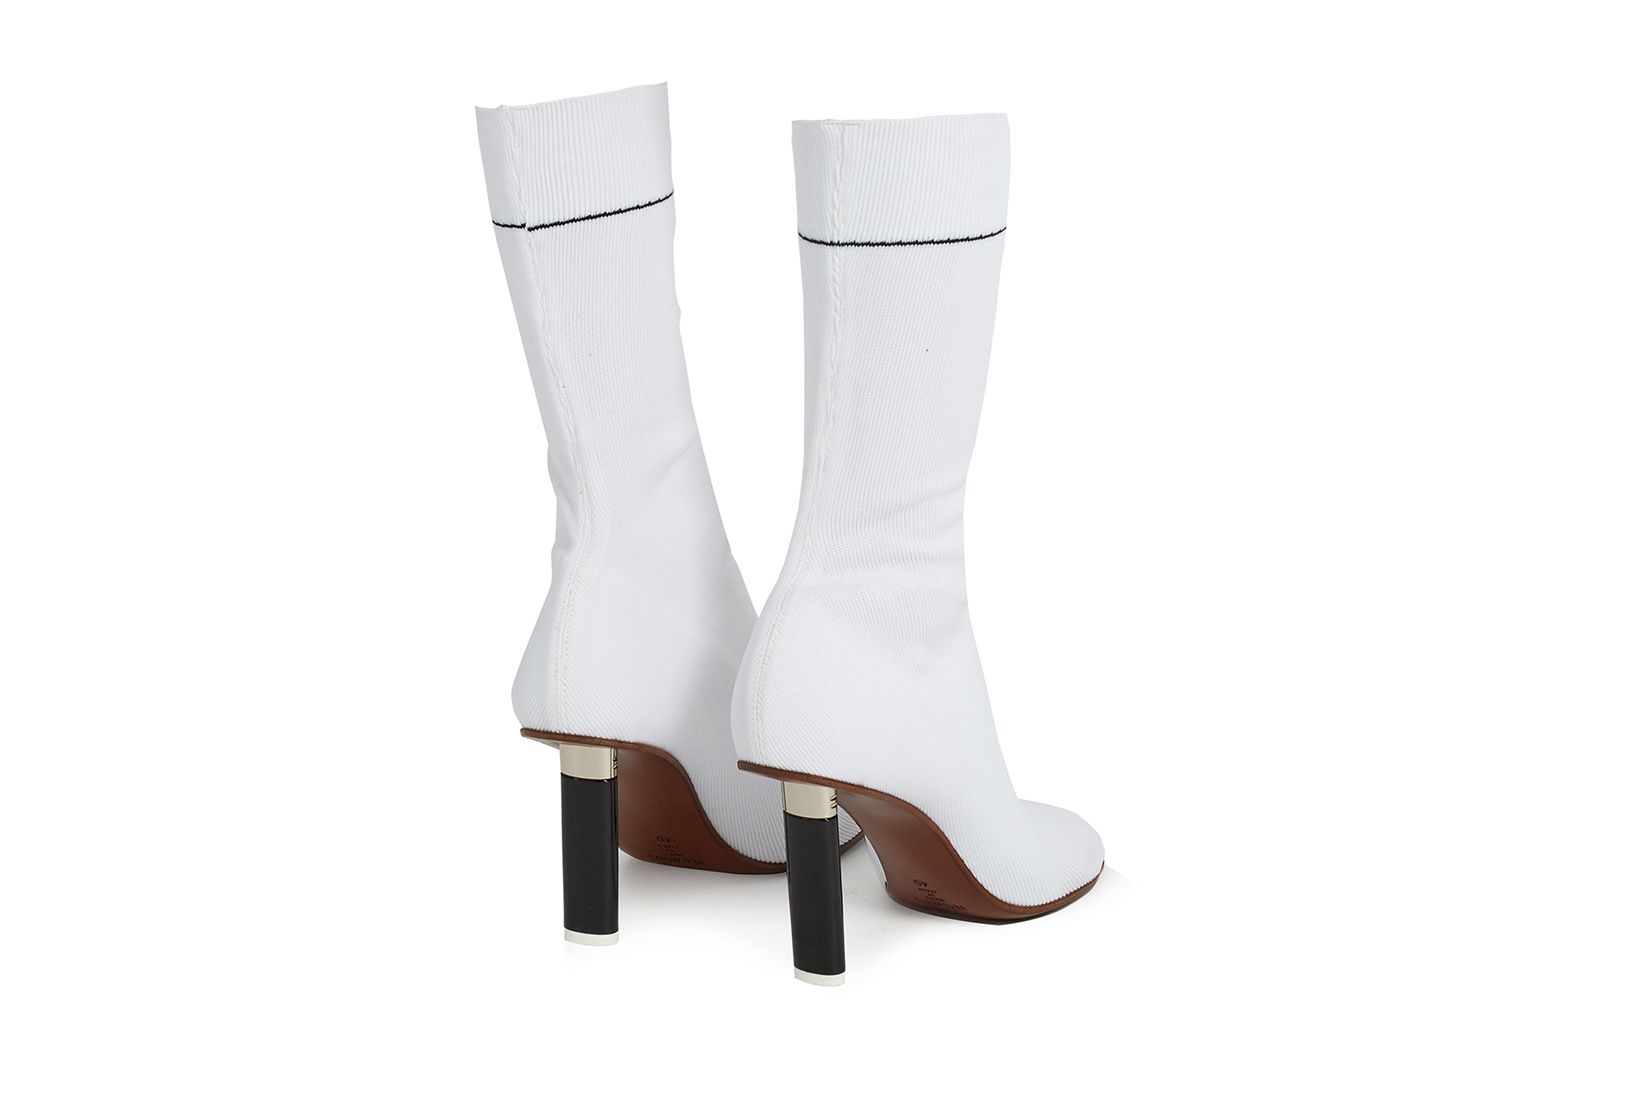 VETEMENTS Sock Ankle Boots - TRENDS periodical